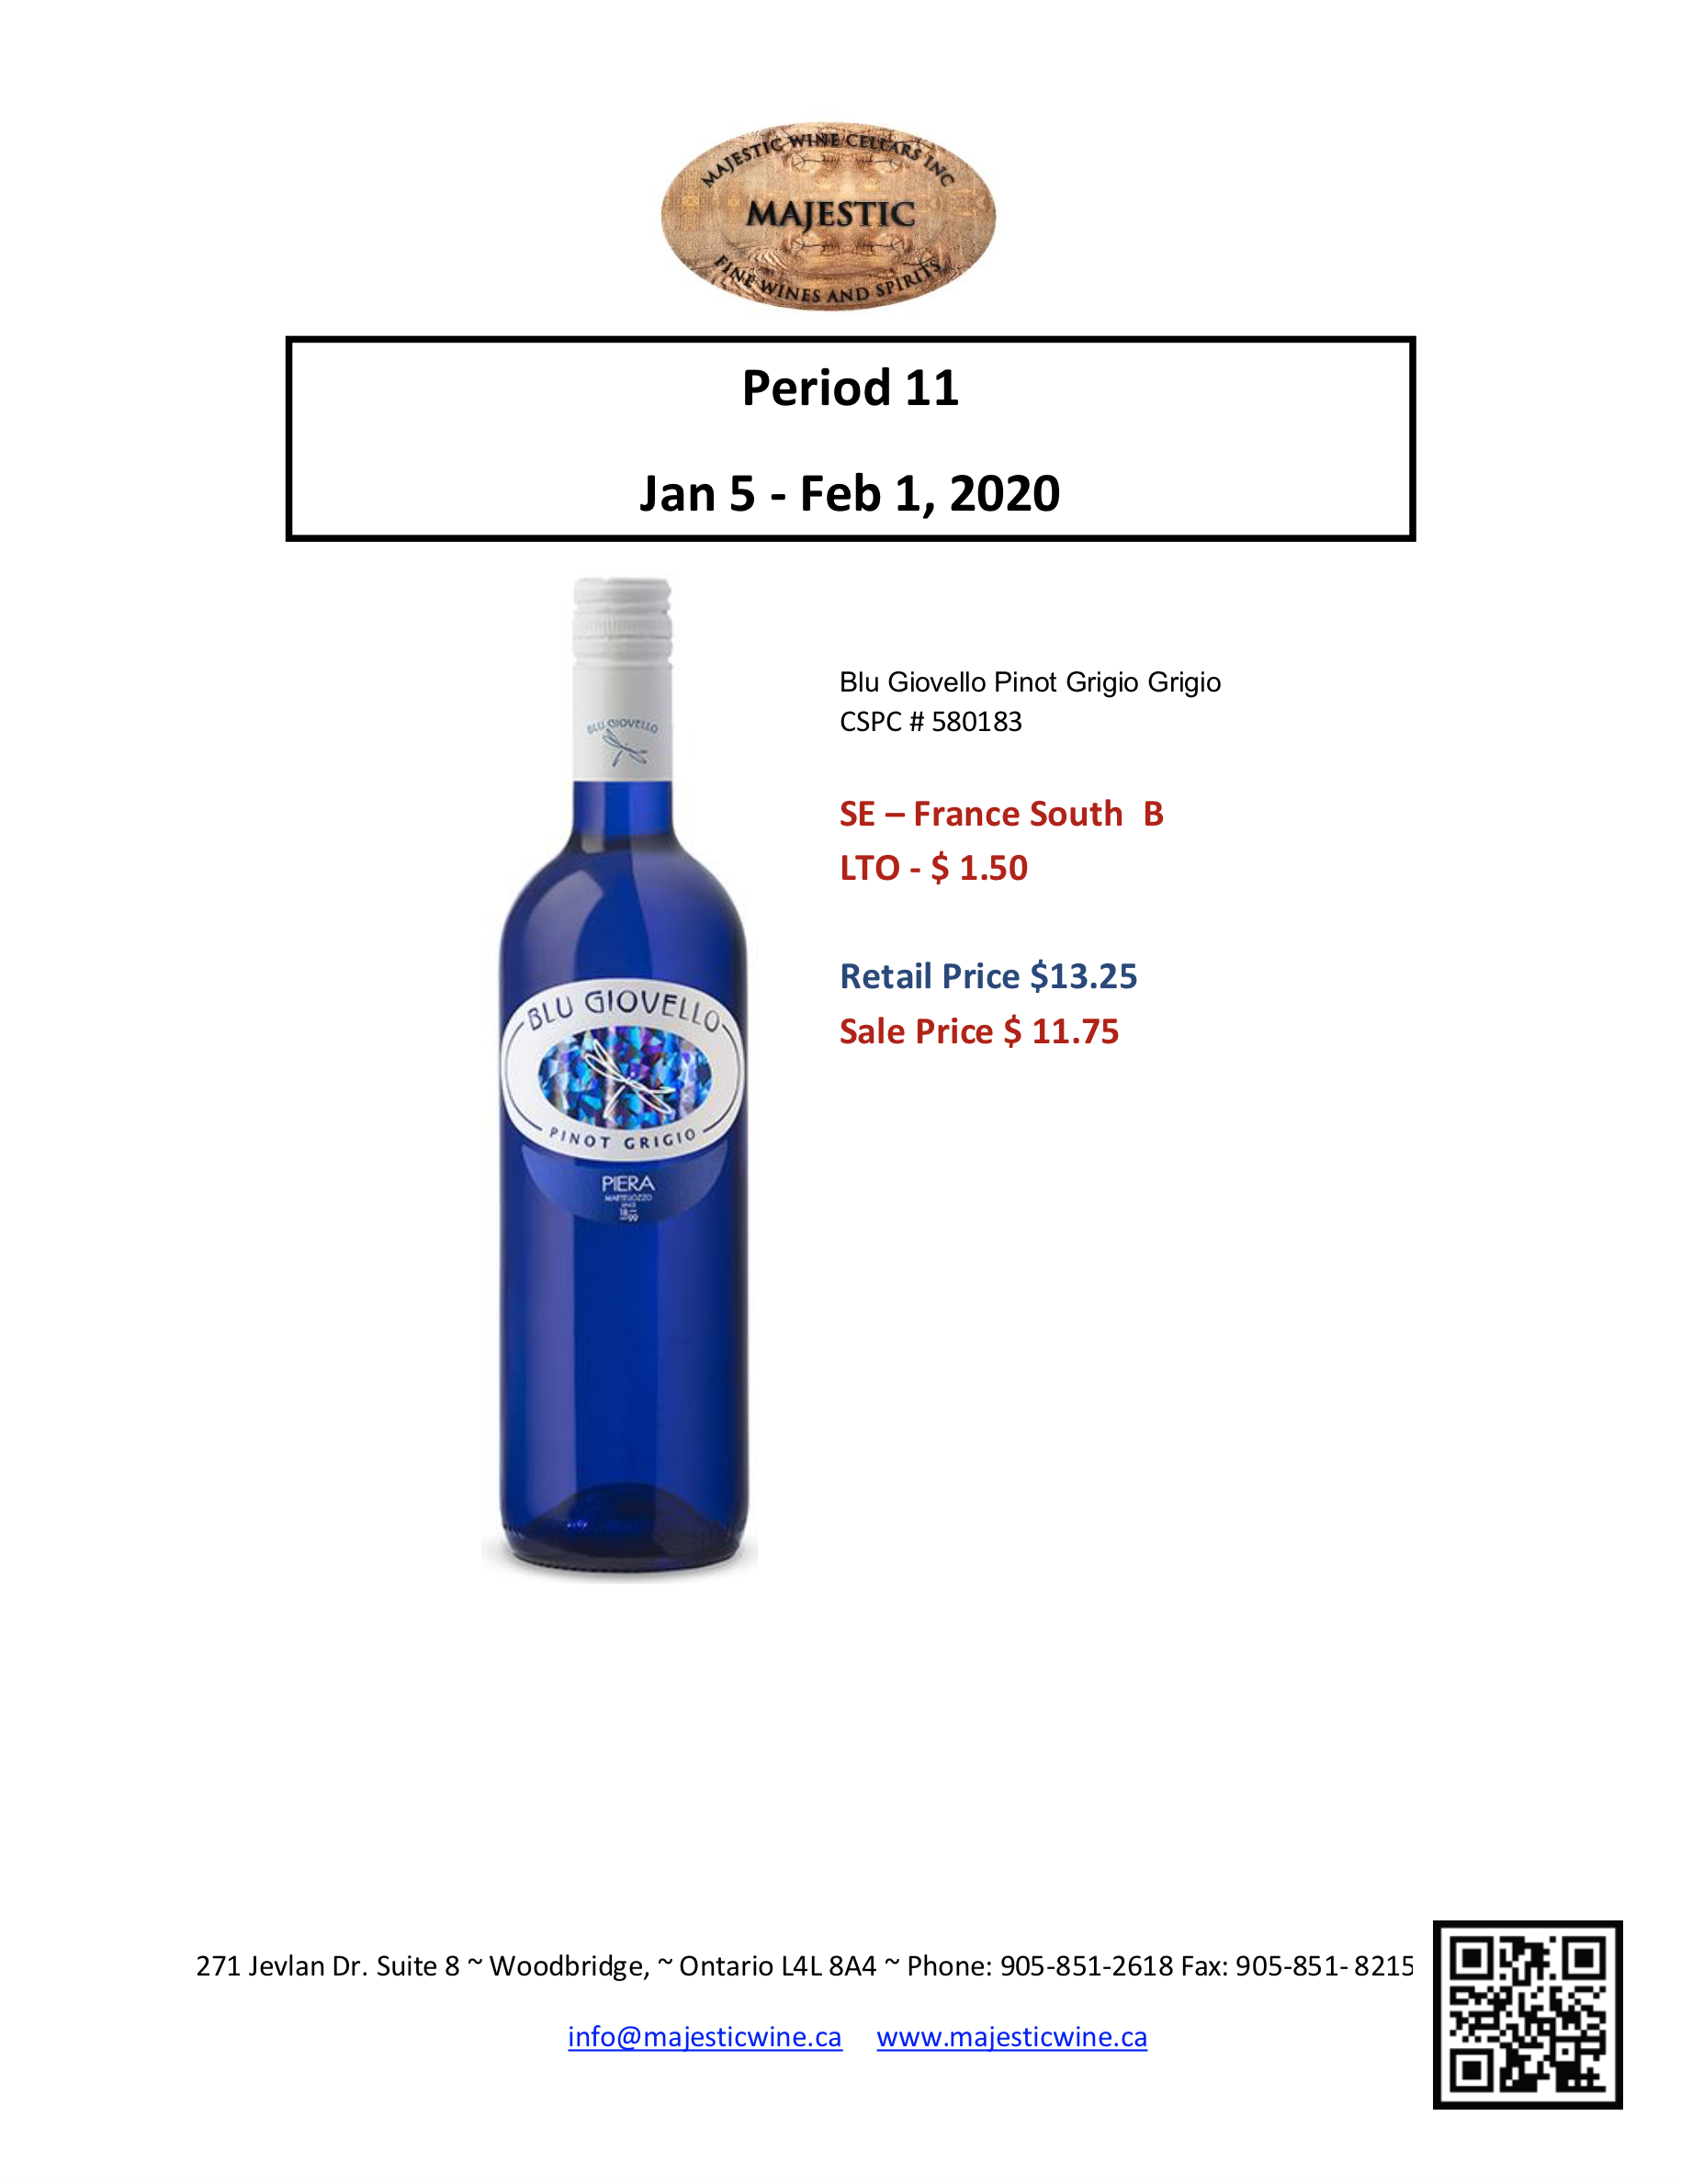 Period 11   January 5th - February 4th Promotion